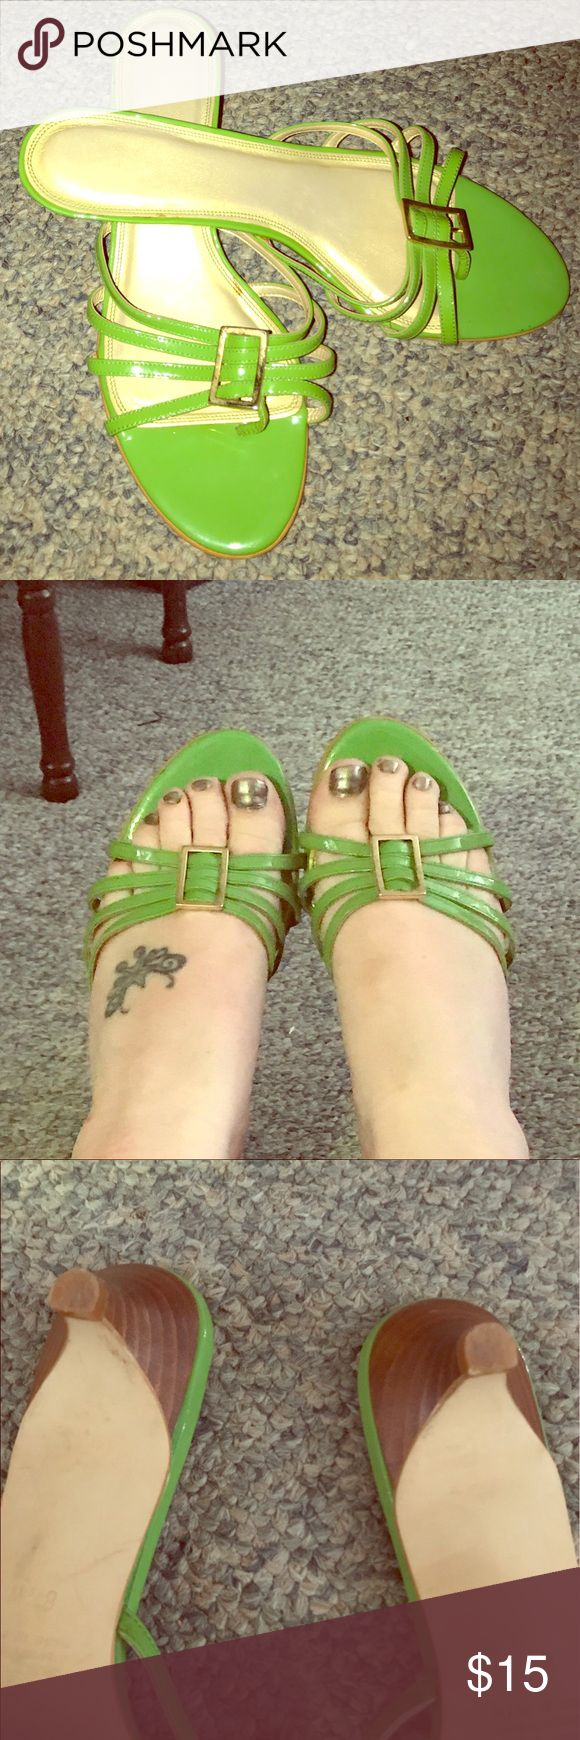 Neon Green/Kitten Heel/Flip-Flops  😍 Neon Green/Kitten Heel/Flip-Flops with a super cute gold buckle! Very bright & summery! They are so comfy too!! You can wear these with any fun, summer outfit or even poolside!! I'm not sure if these were even worn 😕 Don't miss out on these super cute heels!! They are beautiful!! Made in Spain with high quality leather! Bundle & Save!! 🌝❤️⭐️😘 Shoes